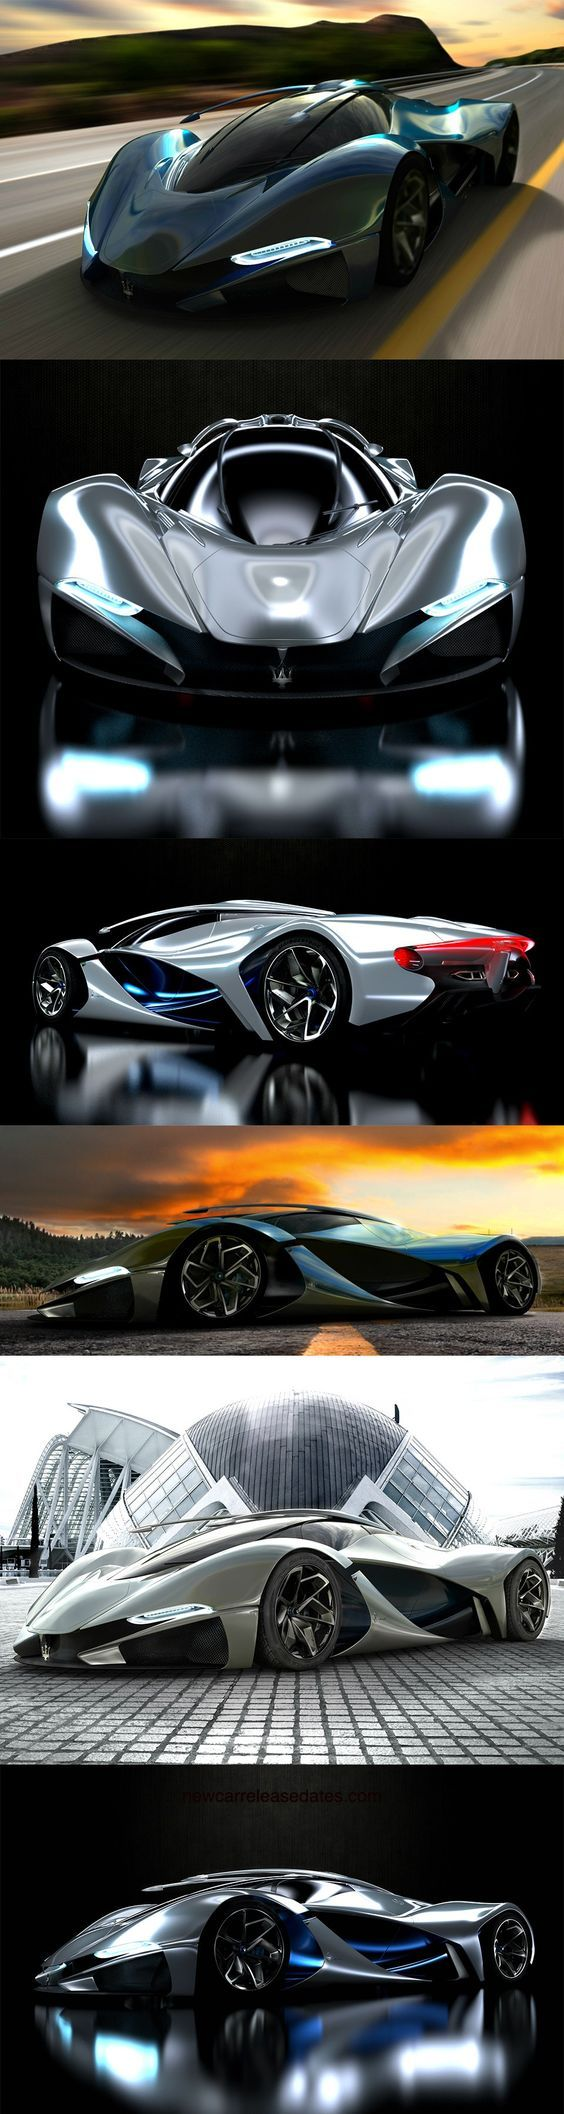 "MUST SEE "" 2017 LaMaserati - Concept Car"", 2017 Concept Car Photos and Images, 2017 Cars"